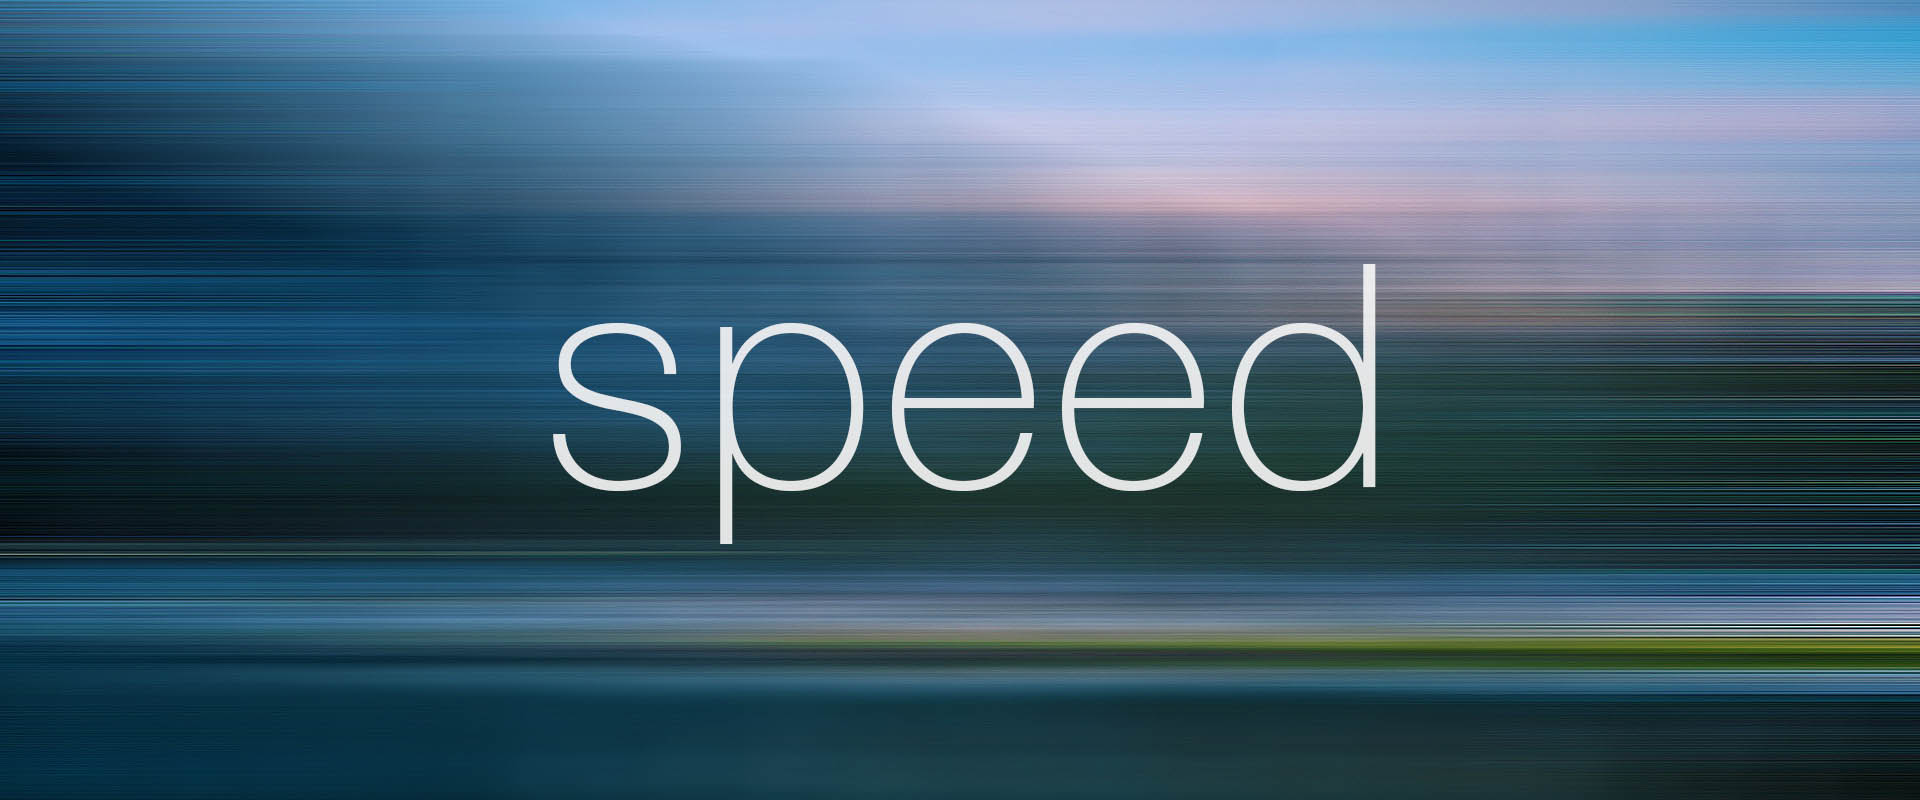 Google speed update - July 2018 - SEOClerks